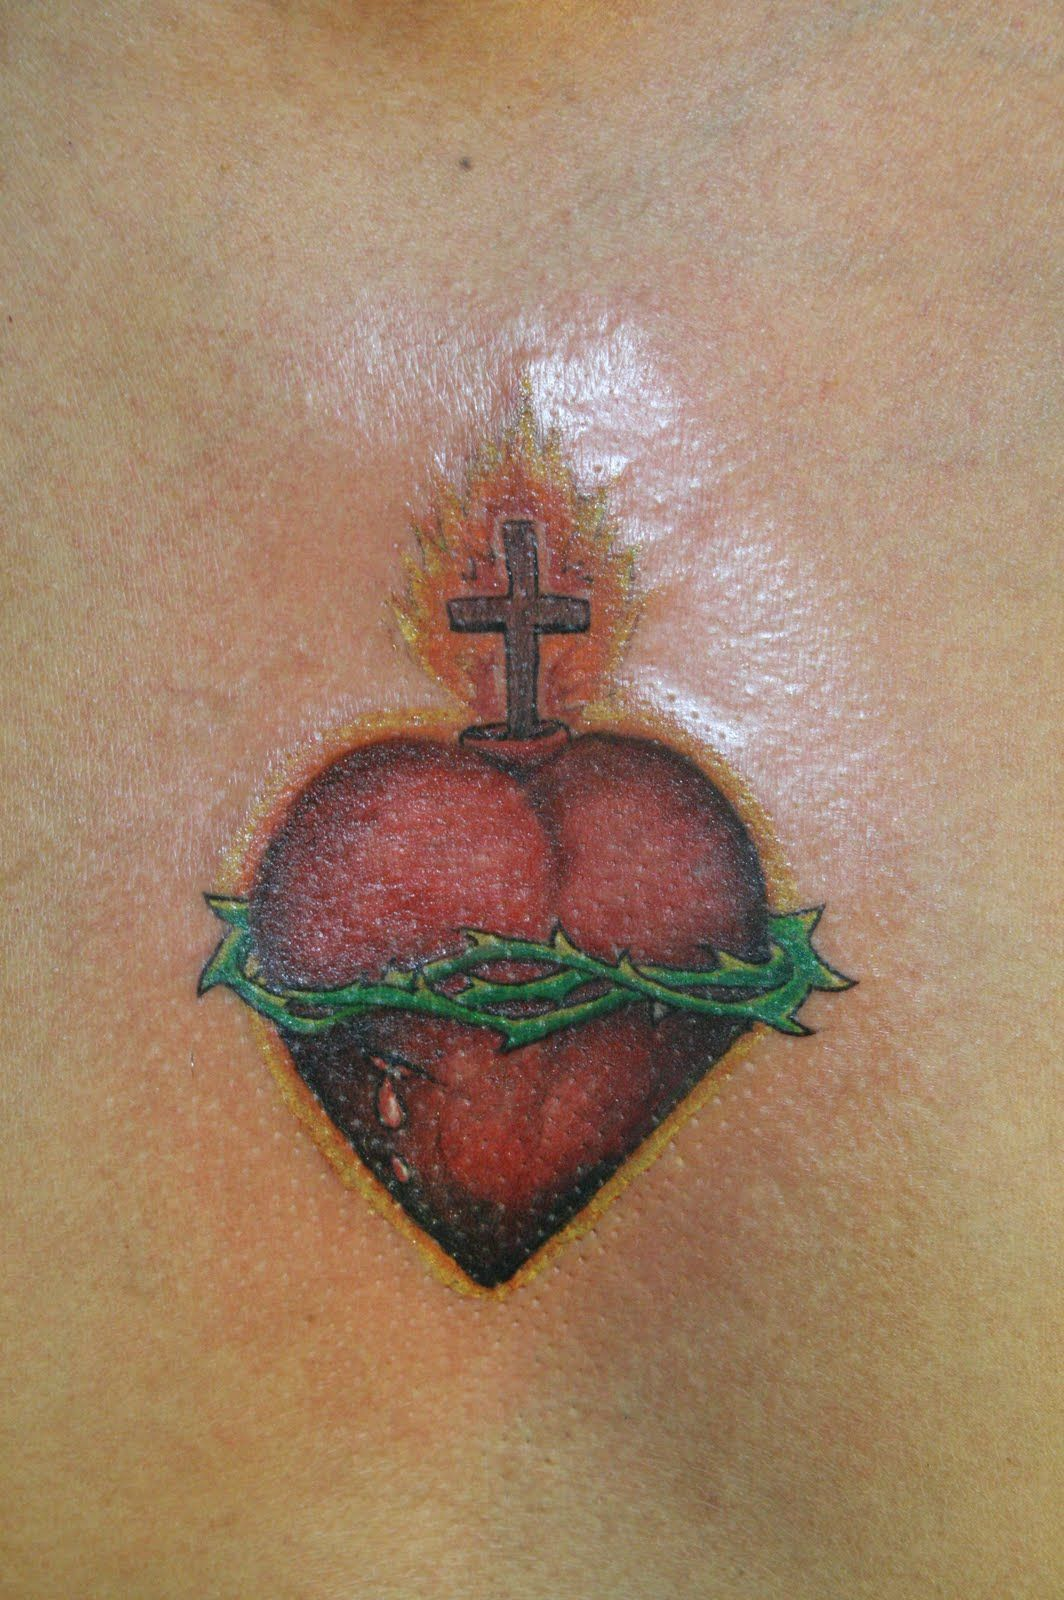 Sacred Heart Cross Tattoos The Sacred Heart Is Often Depicted In